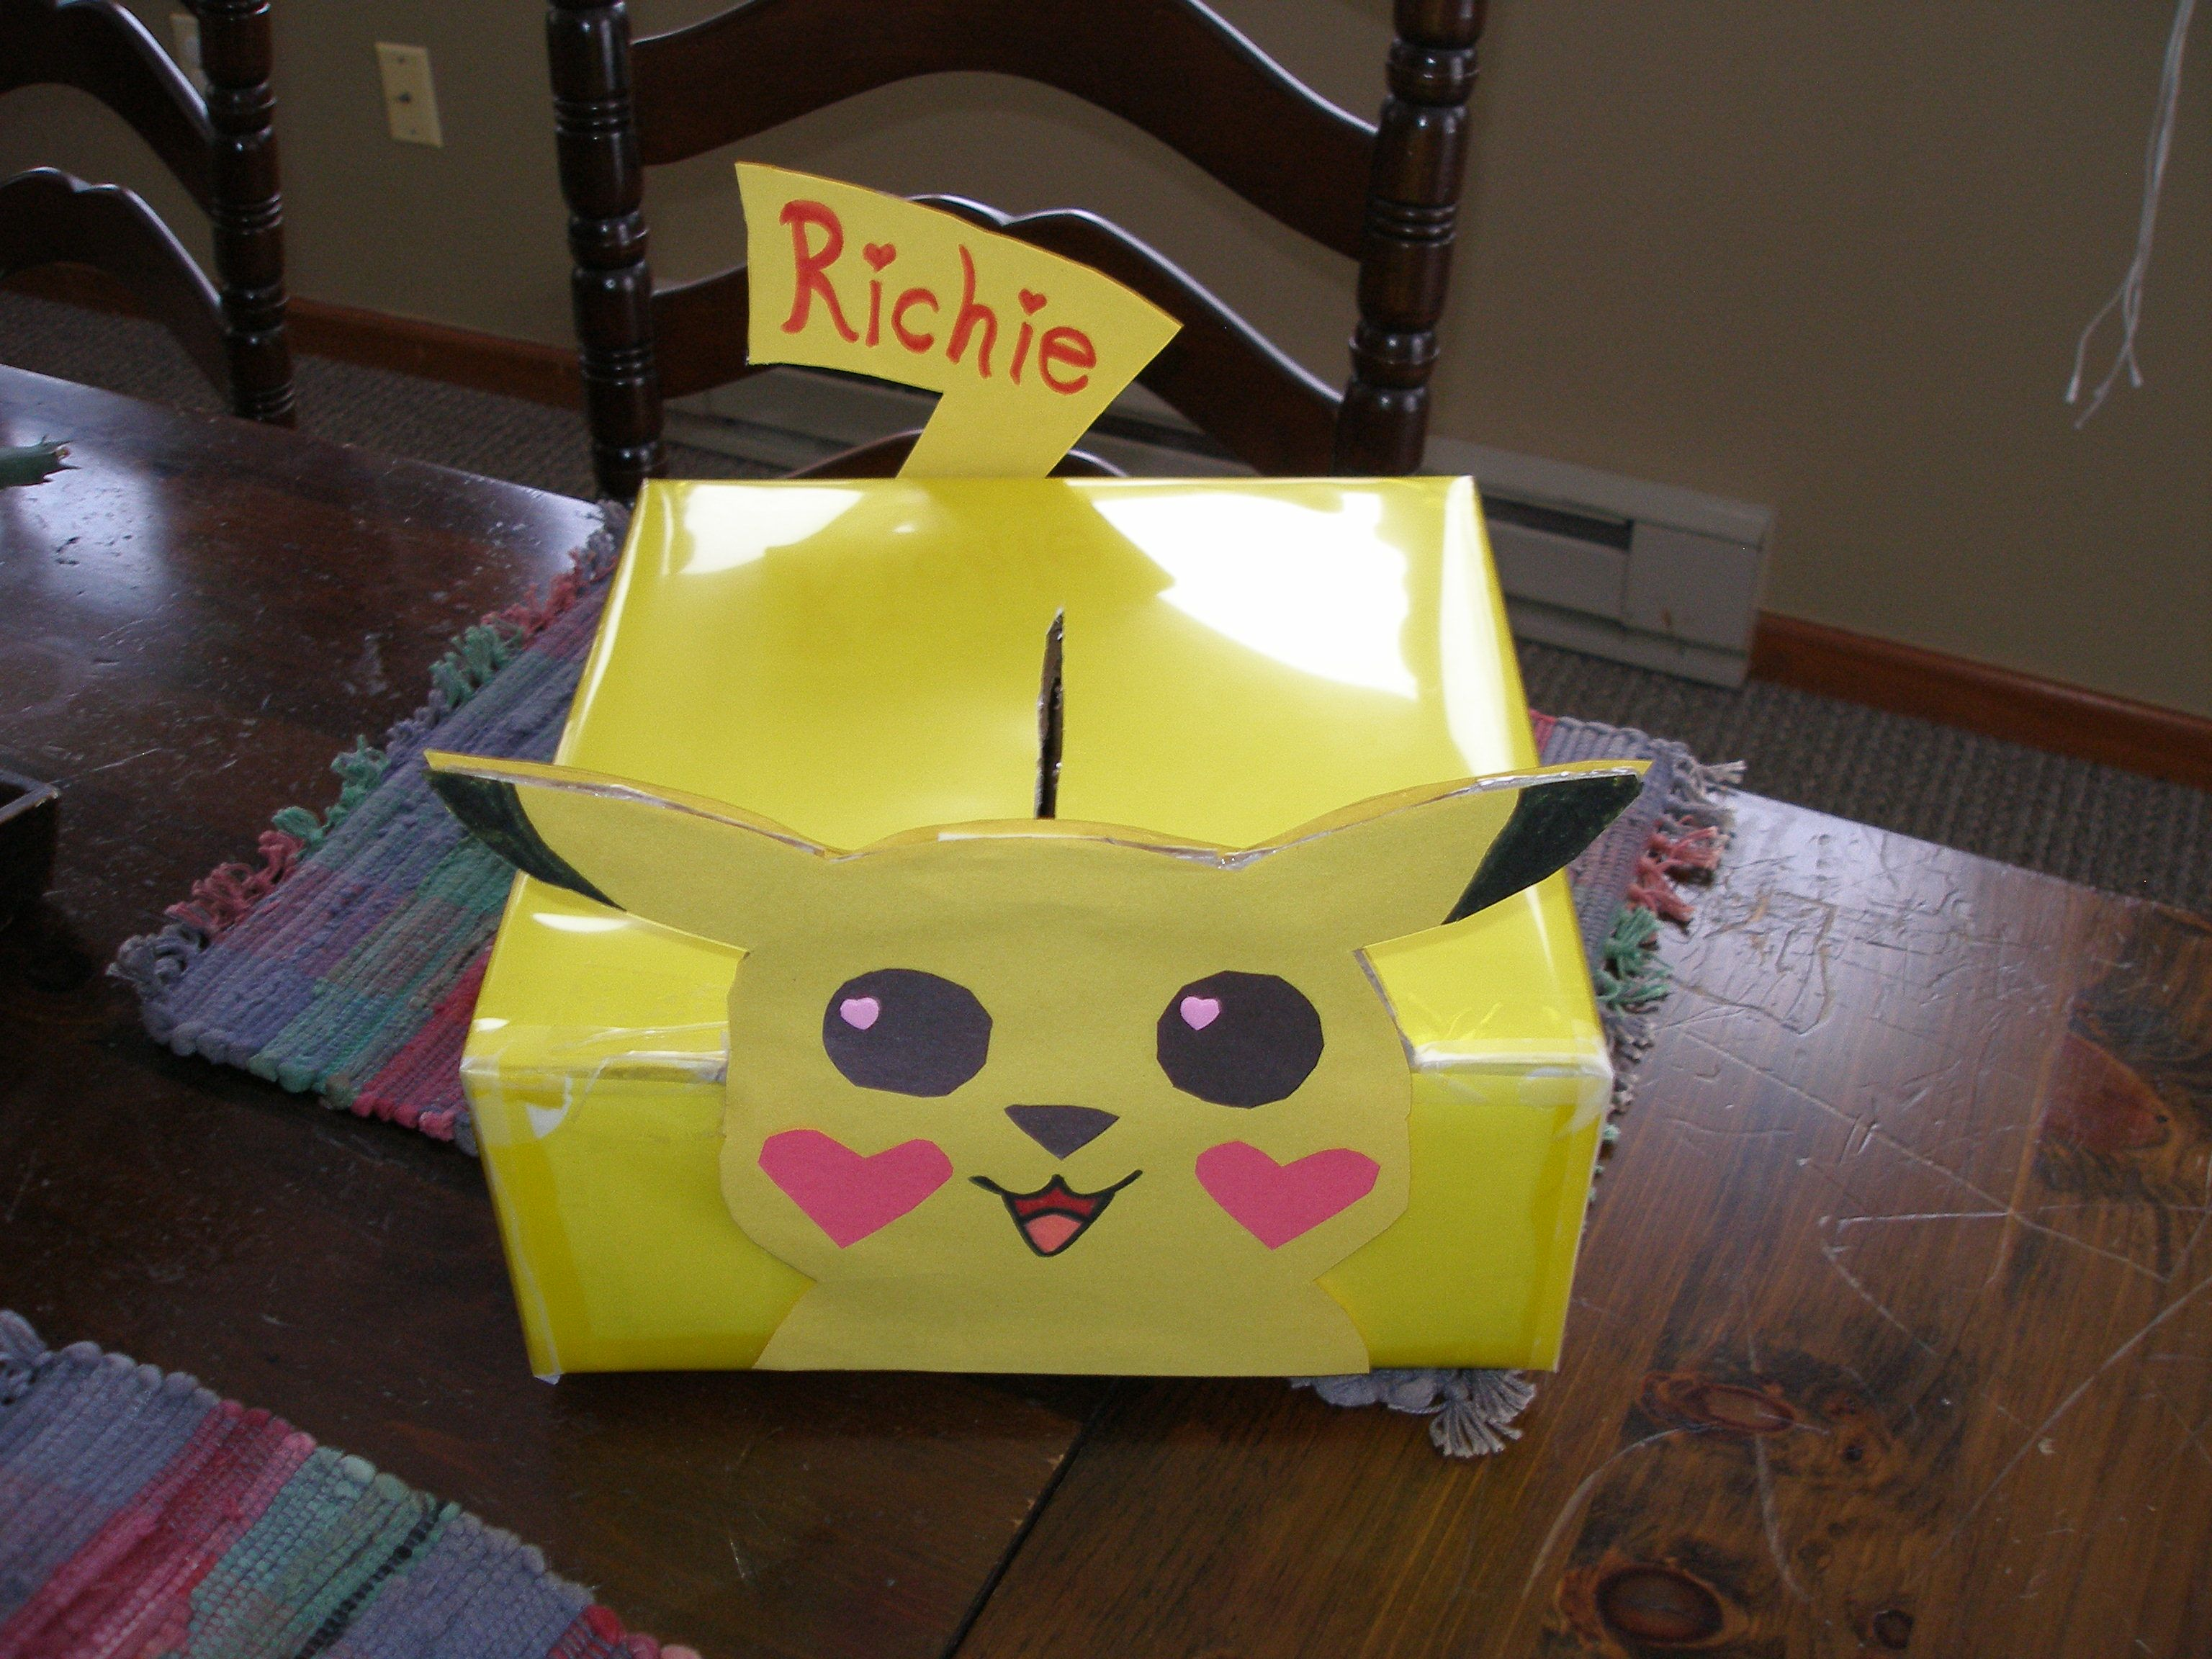 Pikachu Valentine Box Richie I made today – Valentine Card Boxes for School